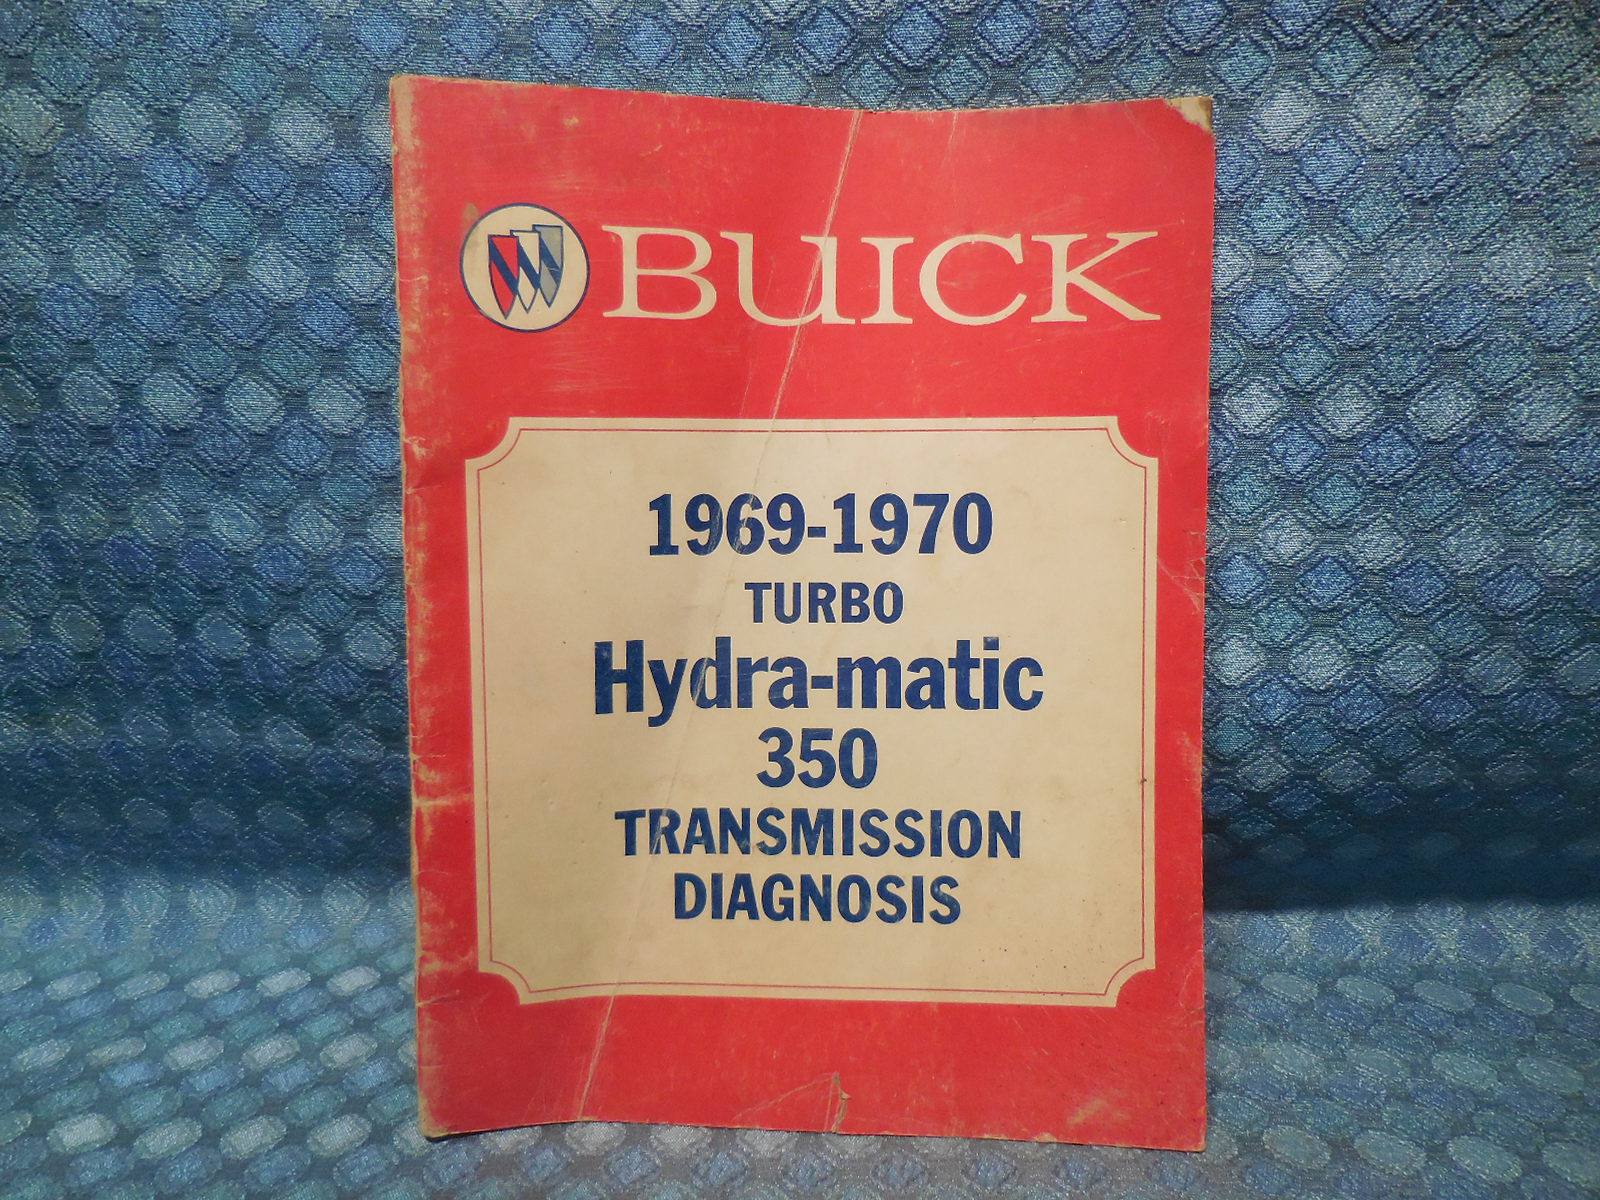 1969-70 Buick Original Turbo Hydra-Matic 350 Transmission Diagnosis Manual  - NOS Texas Parts, LLC - Antique Auto Parts